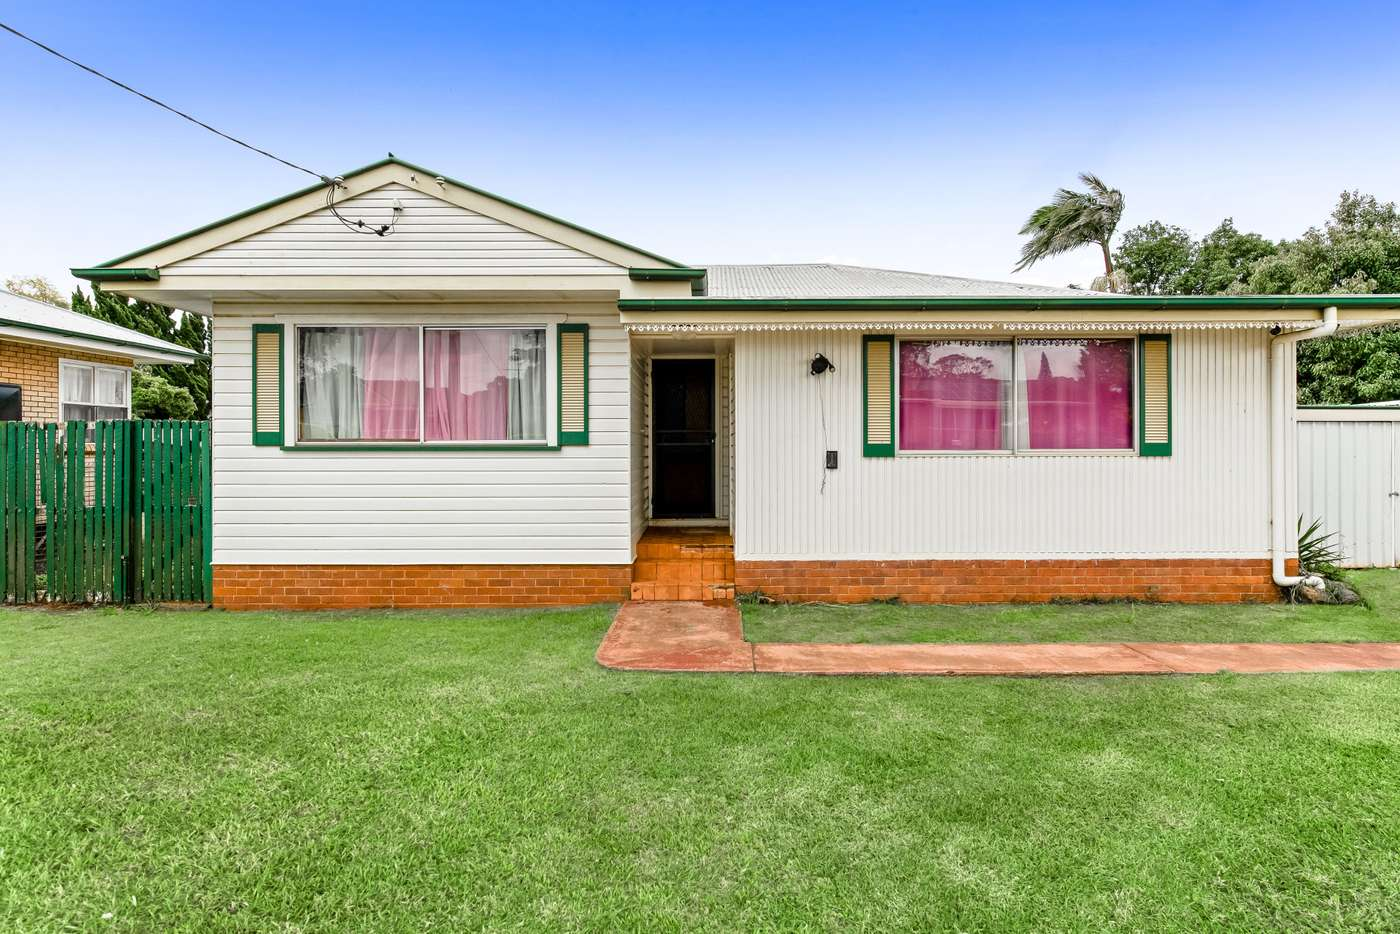 Main view of Homely house listing, 465 Alderley Street, Harristown QLD 4350